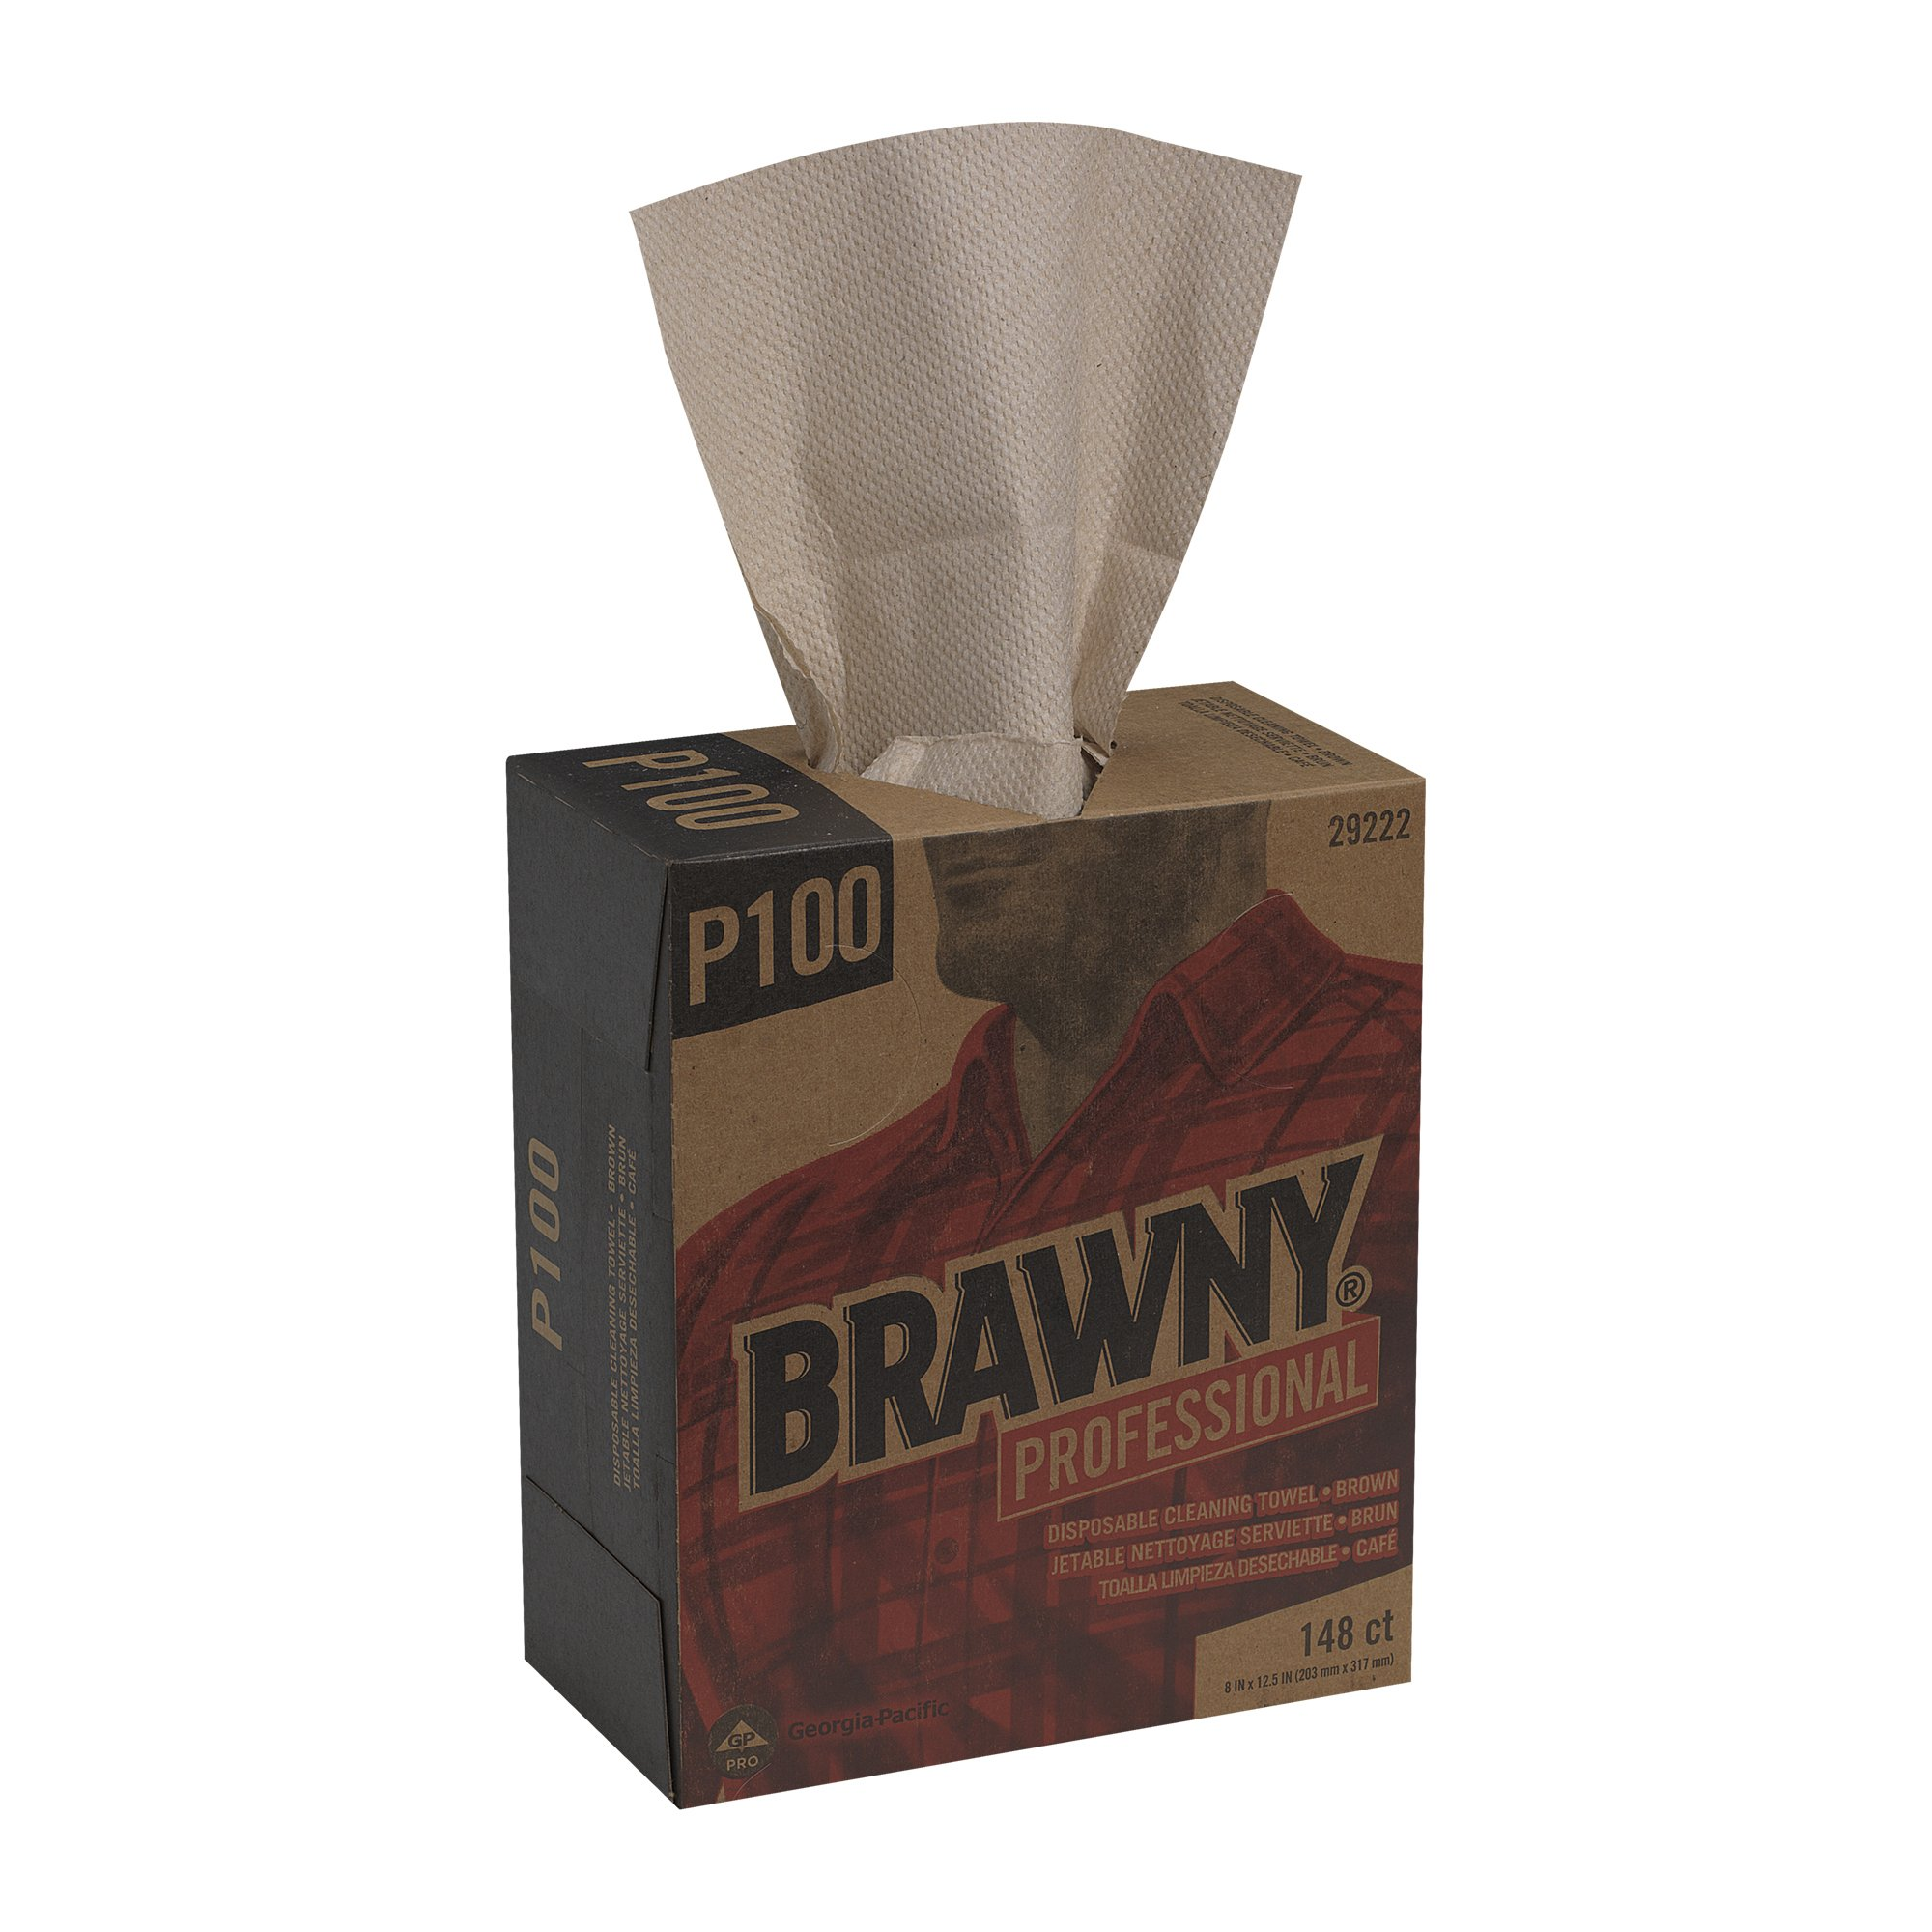 GP PRO Brawny Professional P100 Disposable Cleaning Towel, Tall Box, Brown